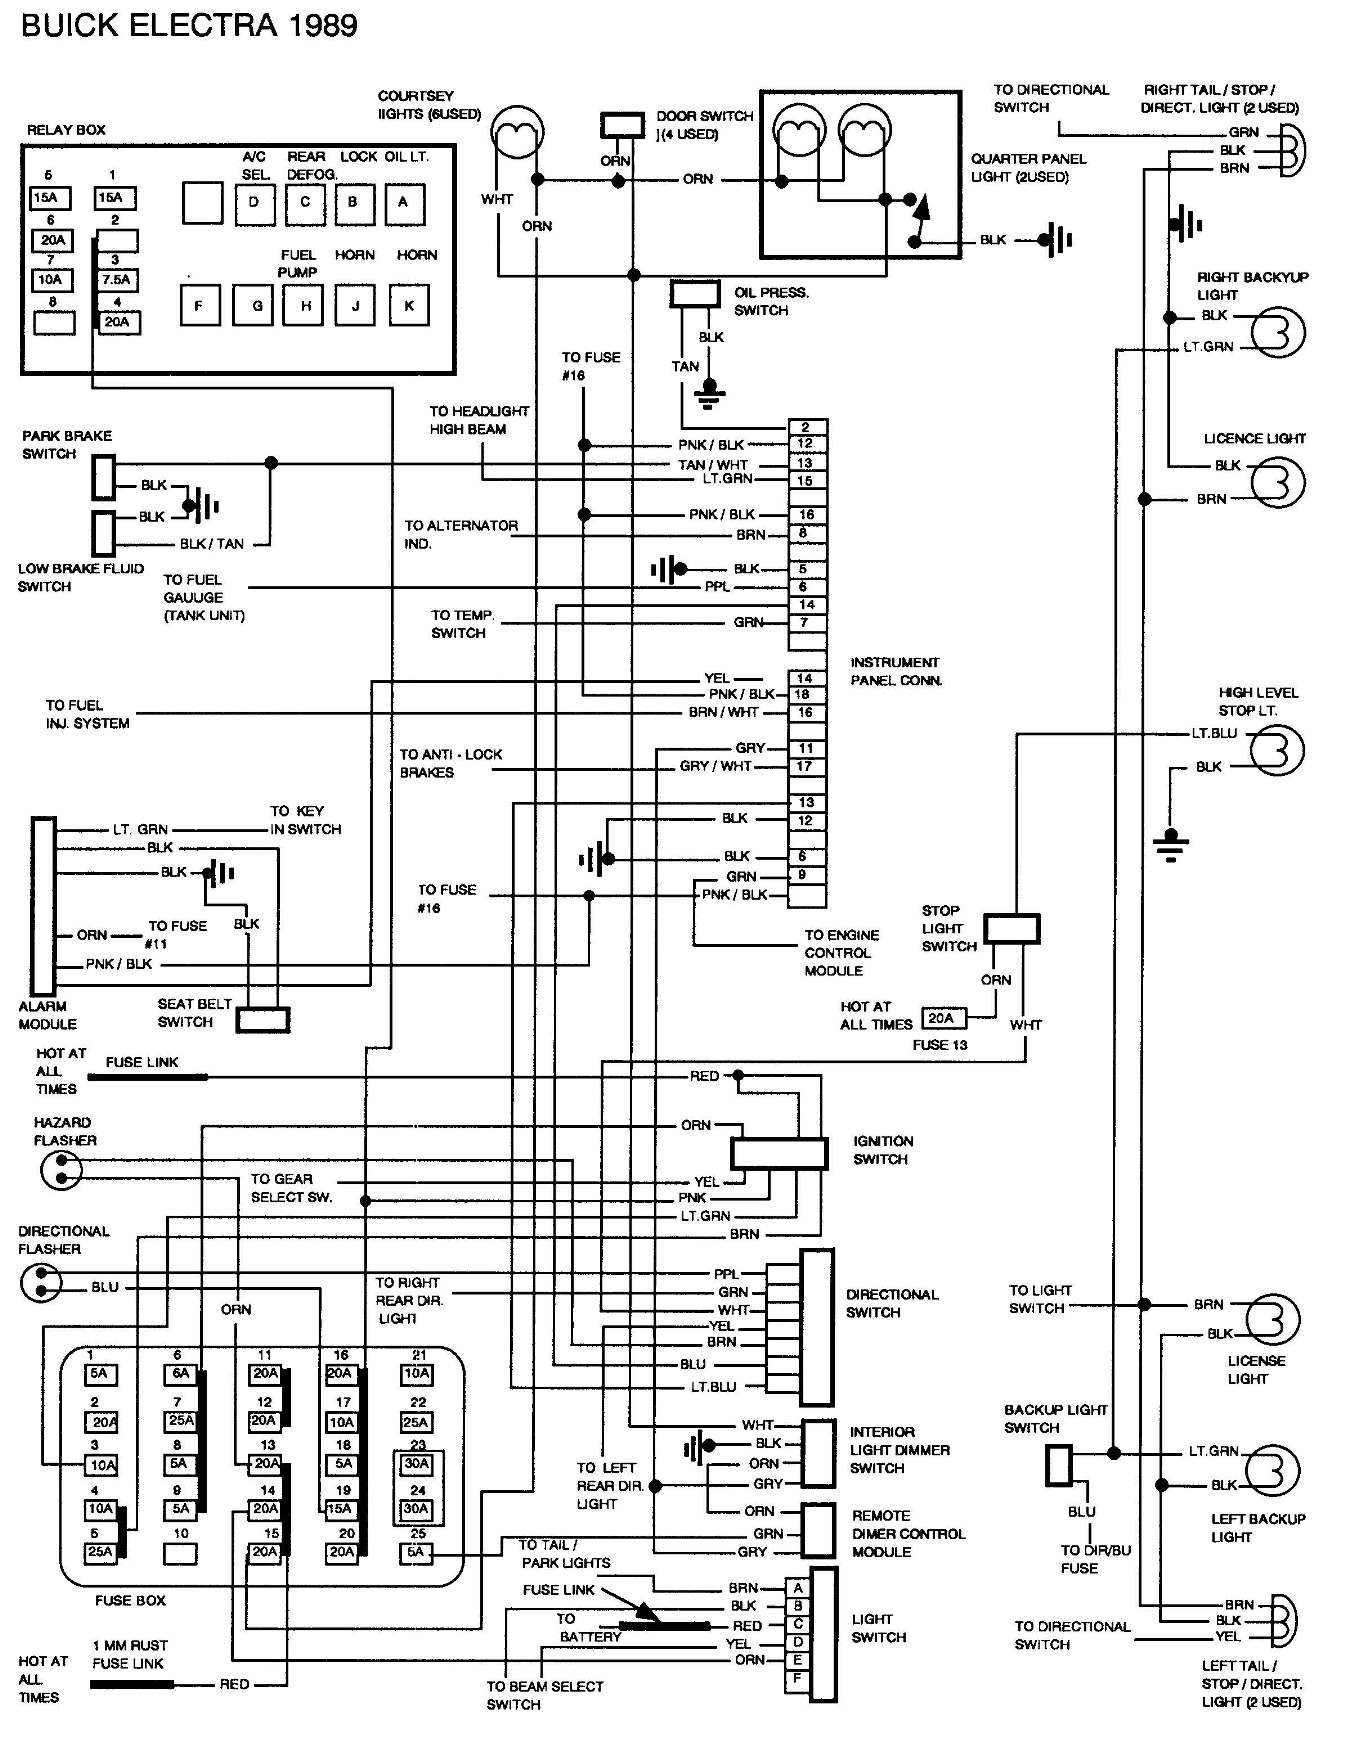 1999 Buick Century Wiring Diagram Free Buick Wiring Diagrams Data Schematics Wiring Diagram • Of 1999 Buick Century Wiring Diagram